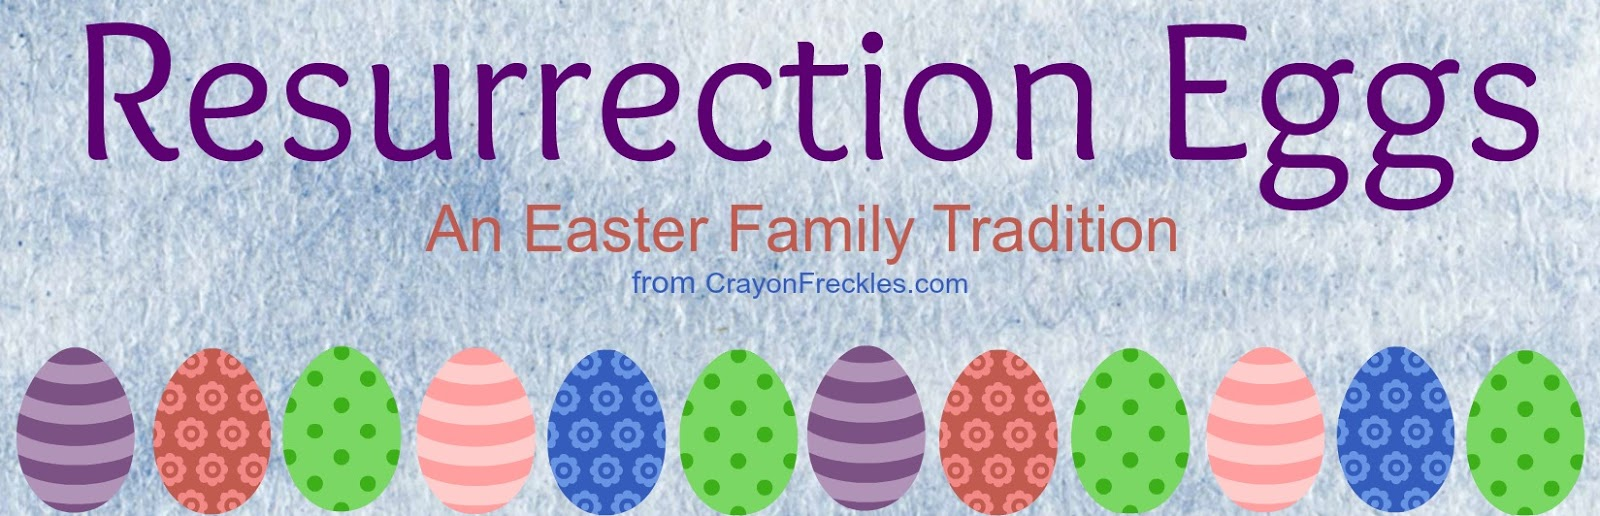 picture regarding Resurrection Egg Story Printable named Crayon Freckles: Resurrection Eggs: The Easter Tale for